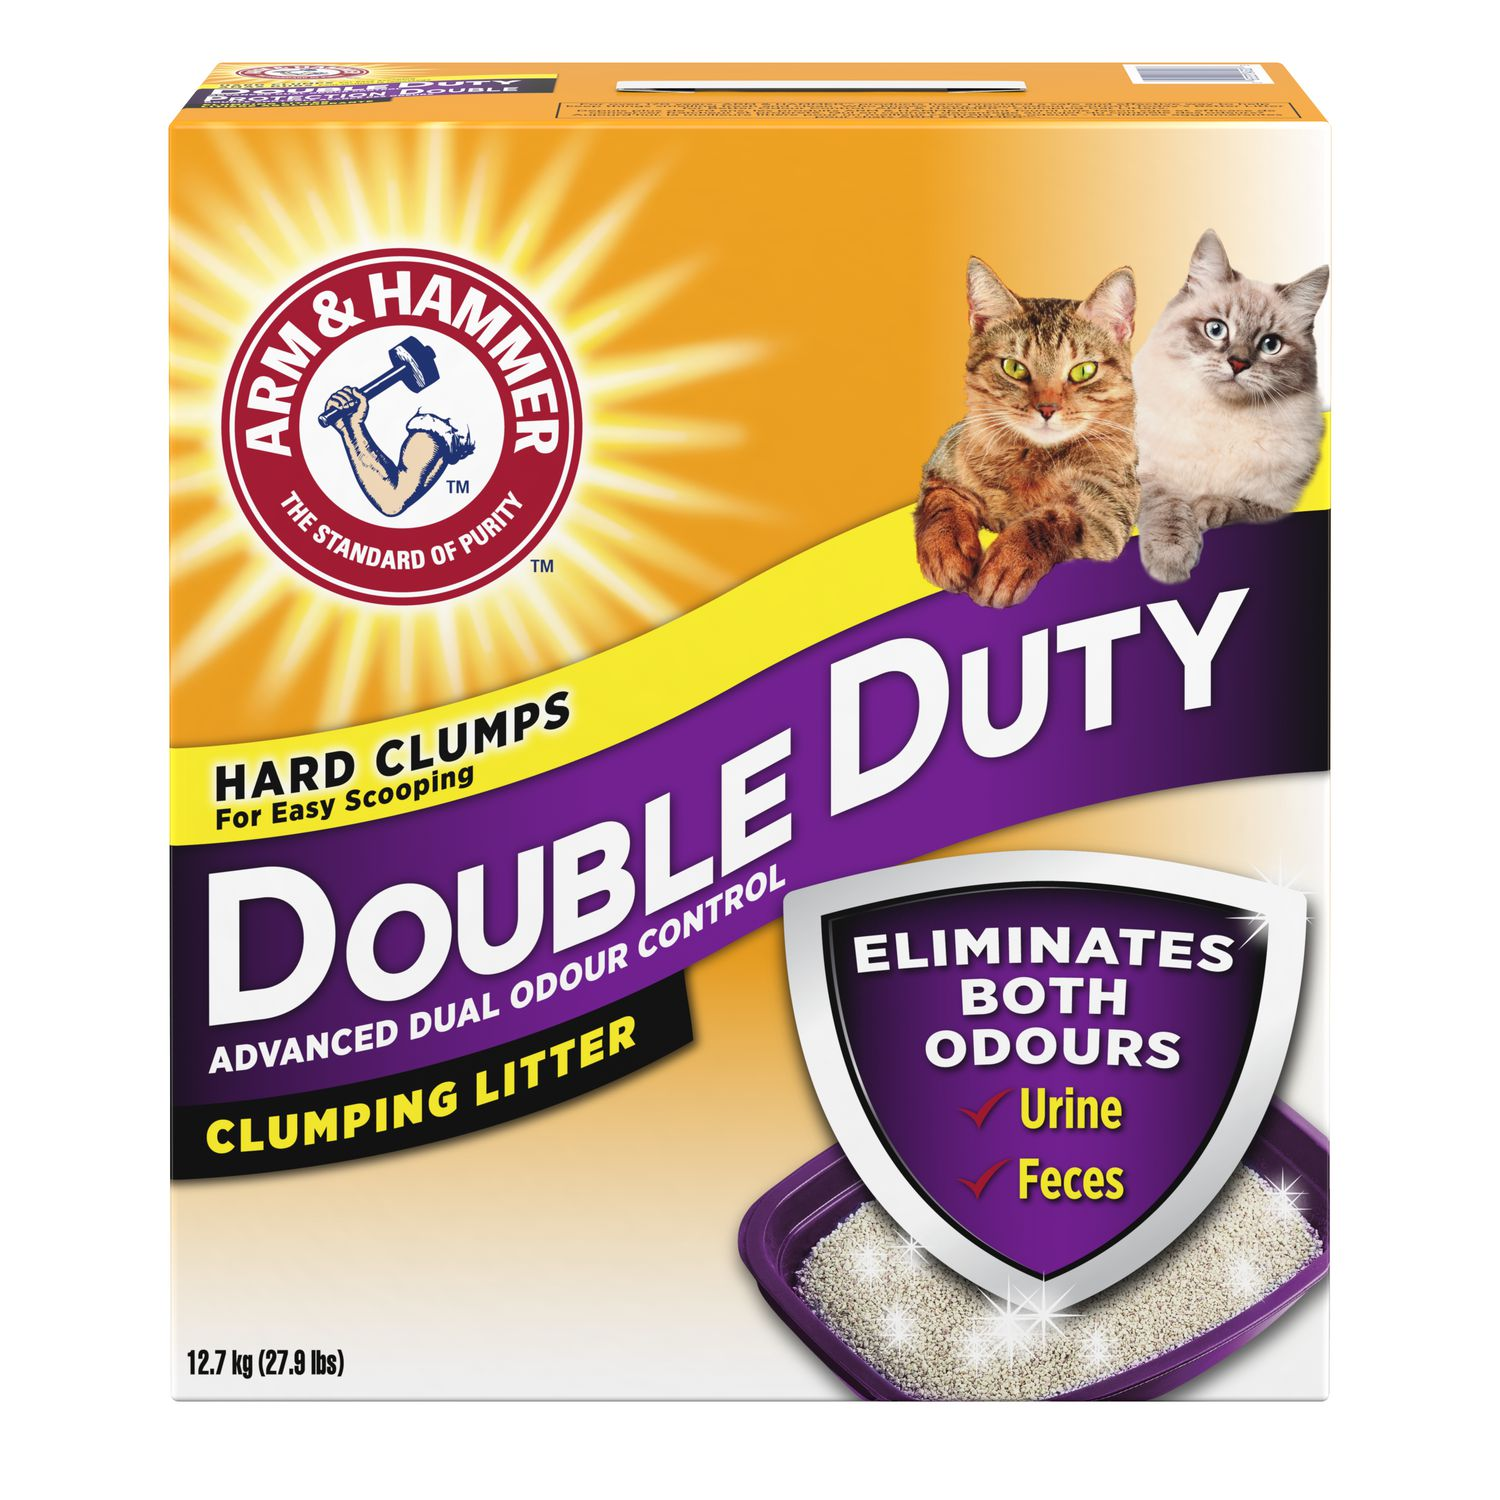 Arm Amp Hammer Double Duty Advanced Odour Control Clumping